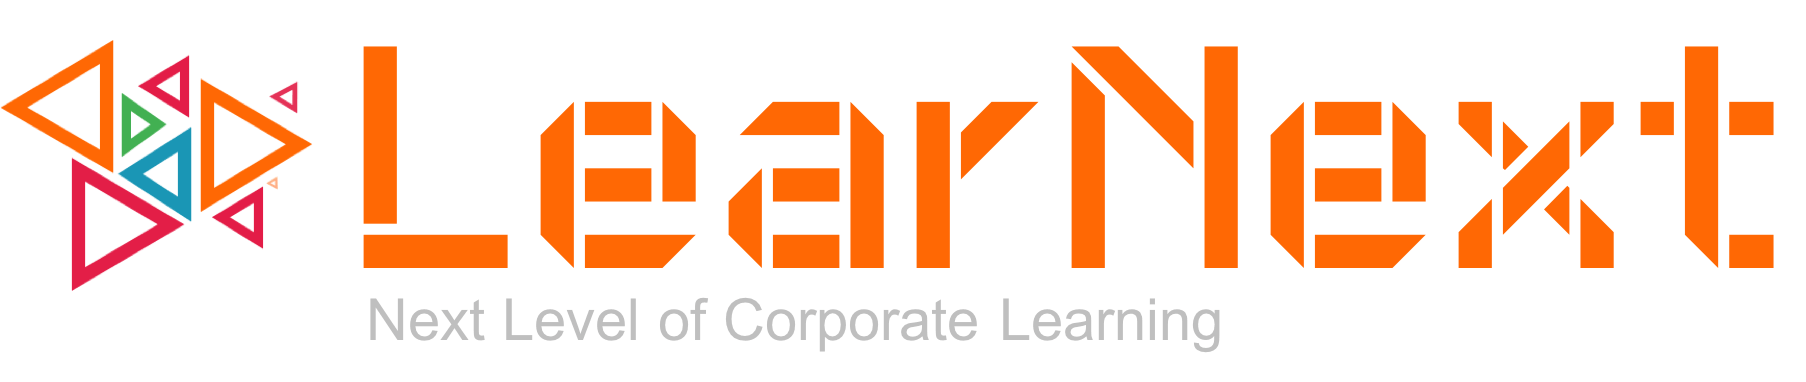 LearNext 2018 - Next Level of Corporate Learning